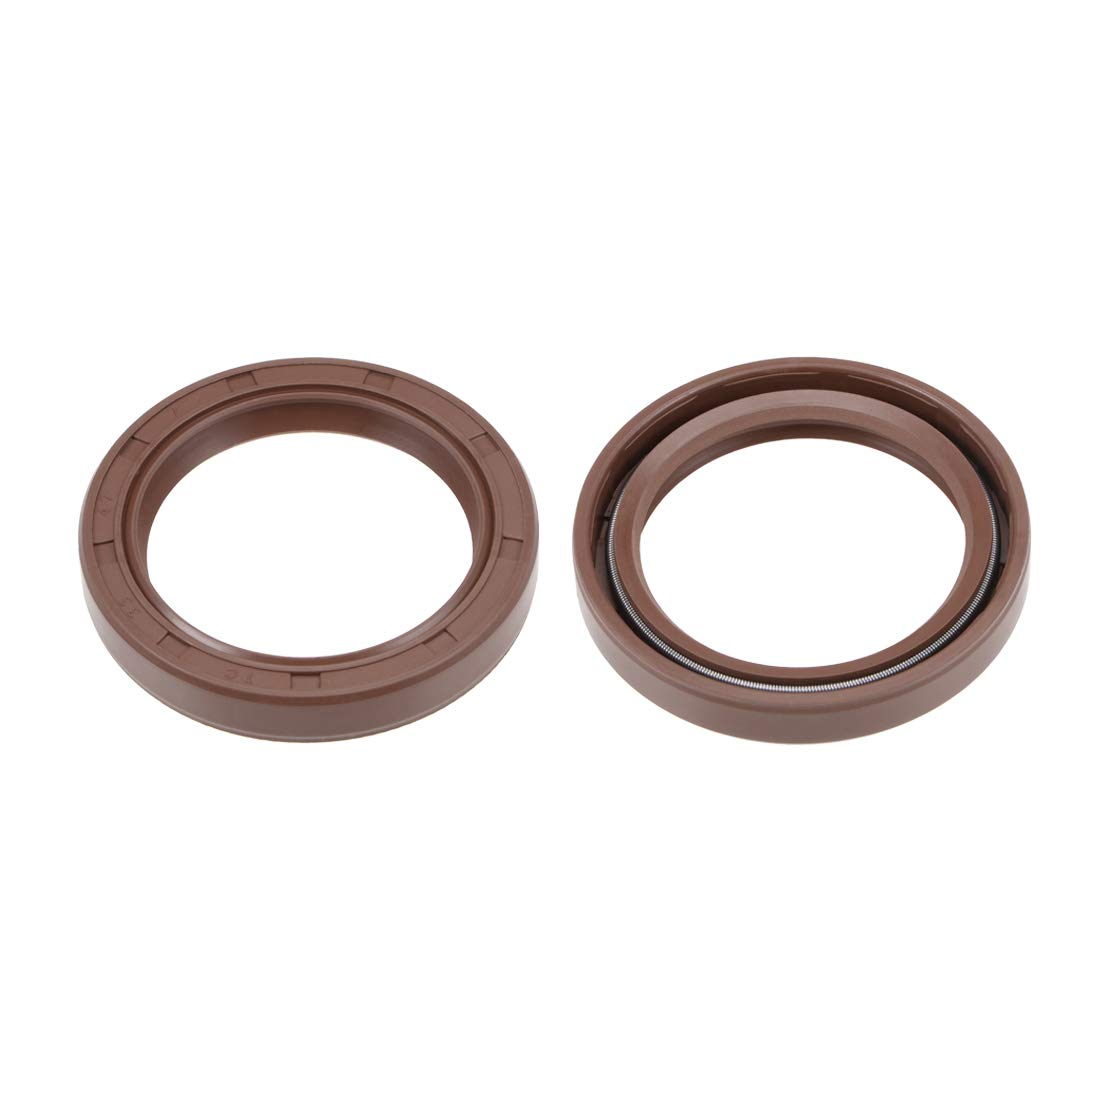 uxcell Oil Seal 35mm Inner Dia 47mm OD 7mm Thick Fluorine Rubber Double Lip Seals 2Pcs